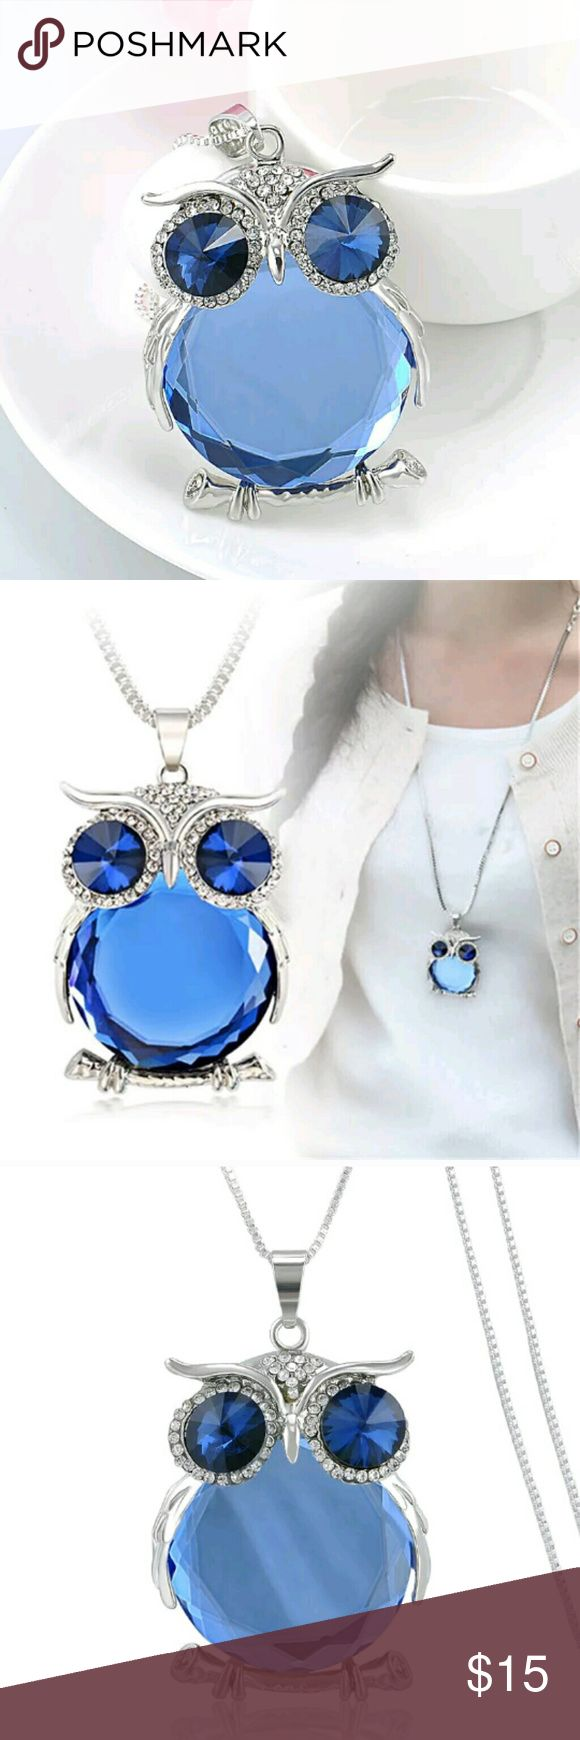 Fashion Owl Rhinestone Crystal w/ Chain Necklace Absolutely adorable owl pendant with rhinestone necklace. It comes with the chain. The chain  length is 76 centimeters. It is a silvertone and is brand new. Thank you for looking. Jewelry Necklaces